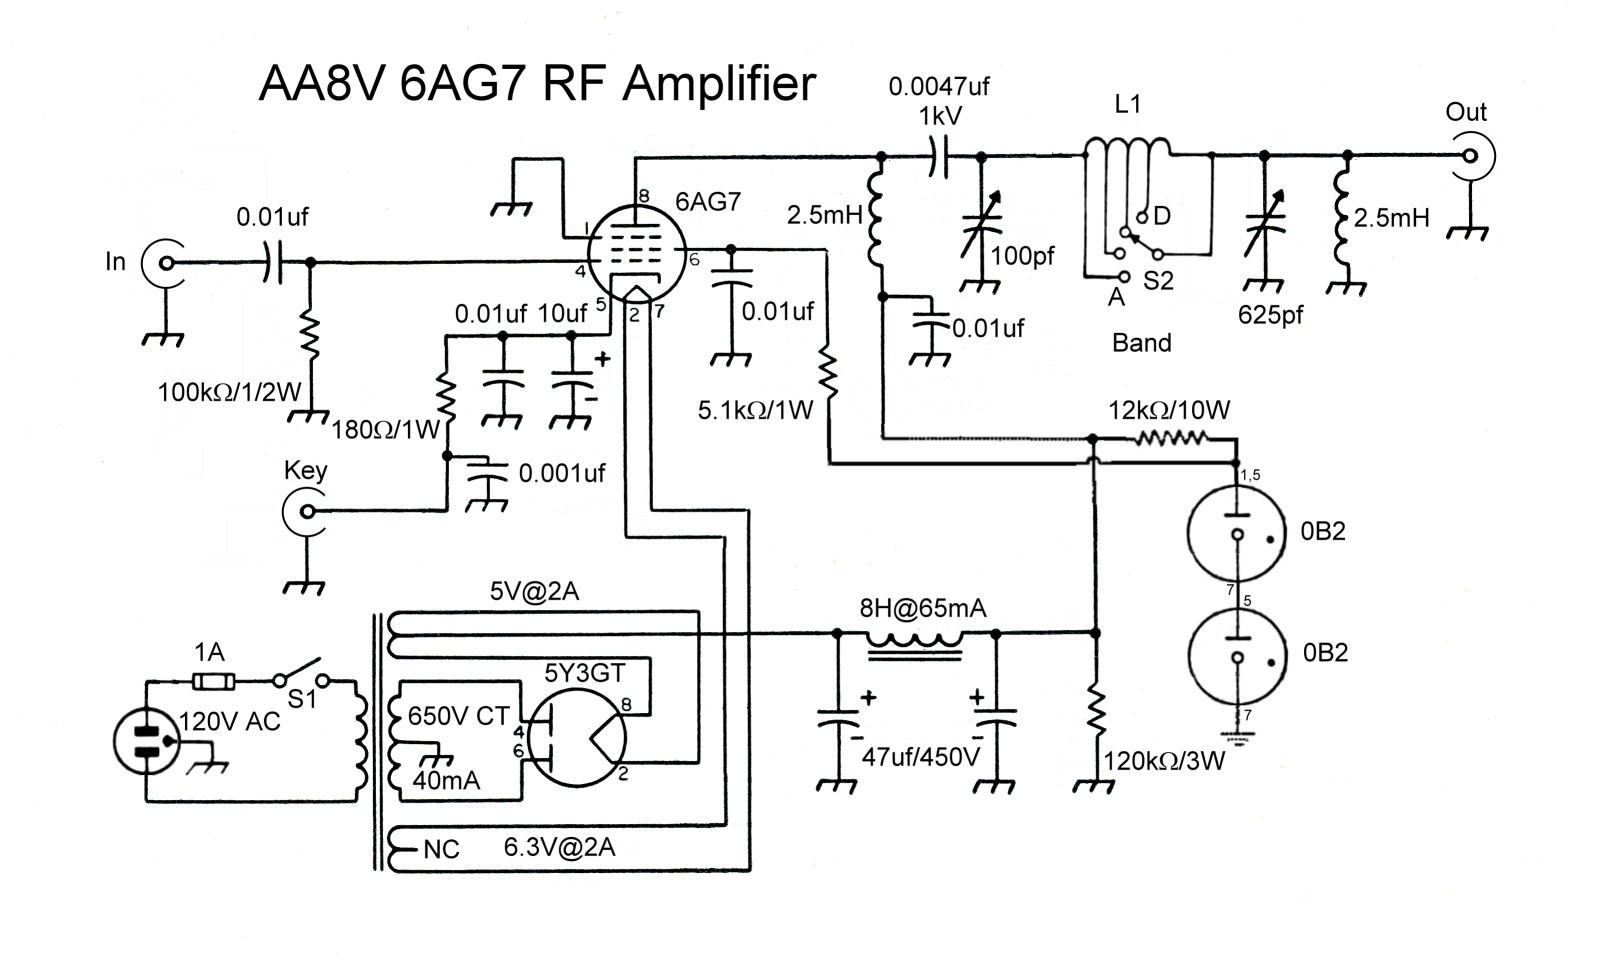 The Aa8v 6ag7 Amplifier Schematic Diagrams And Circuit Descriptions Drawing Rotated Full Resolution For Printing